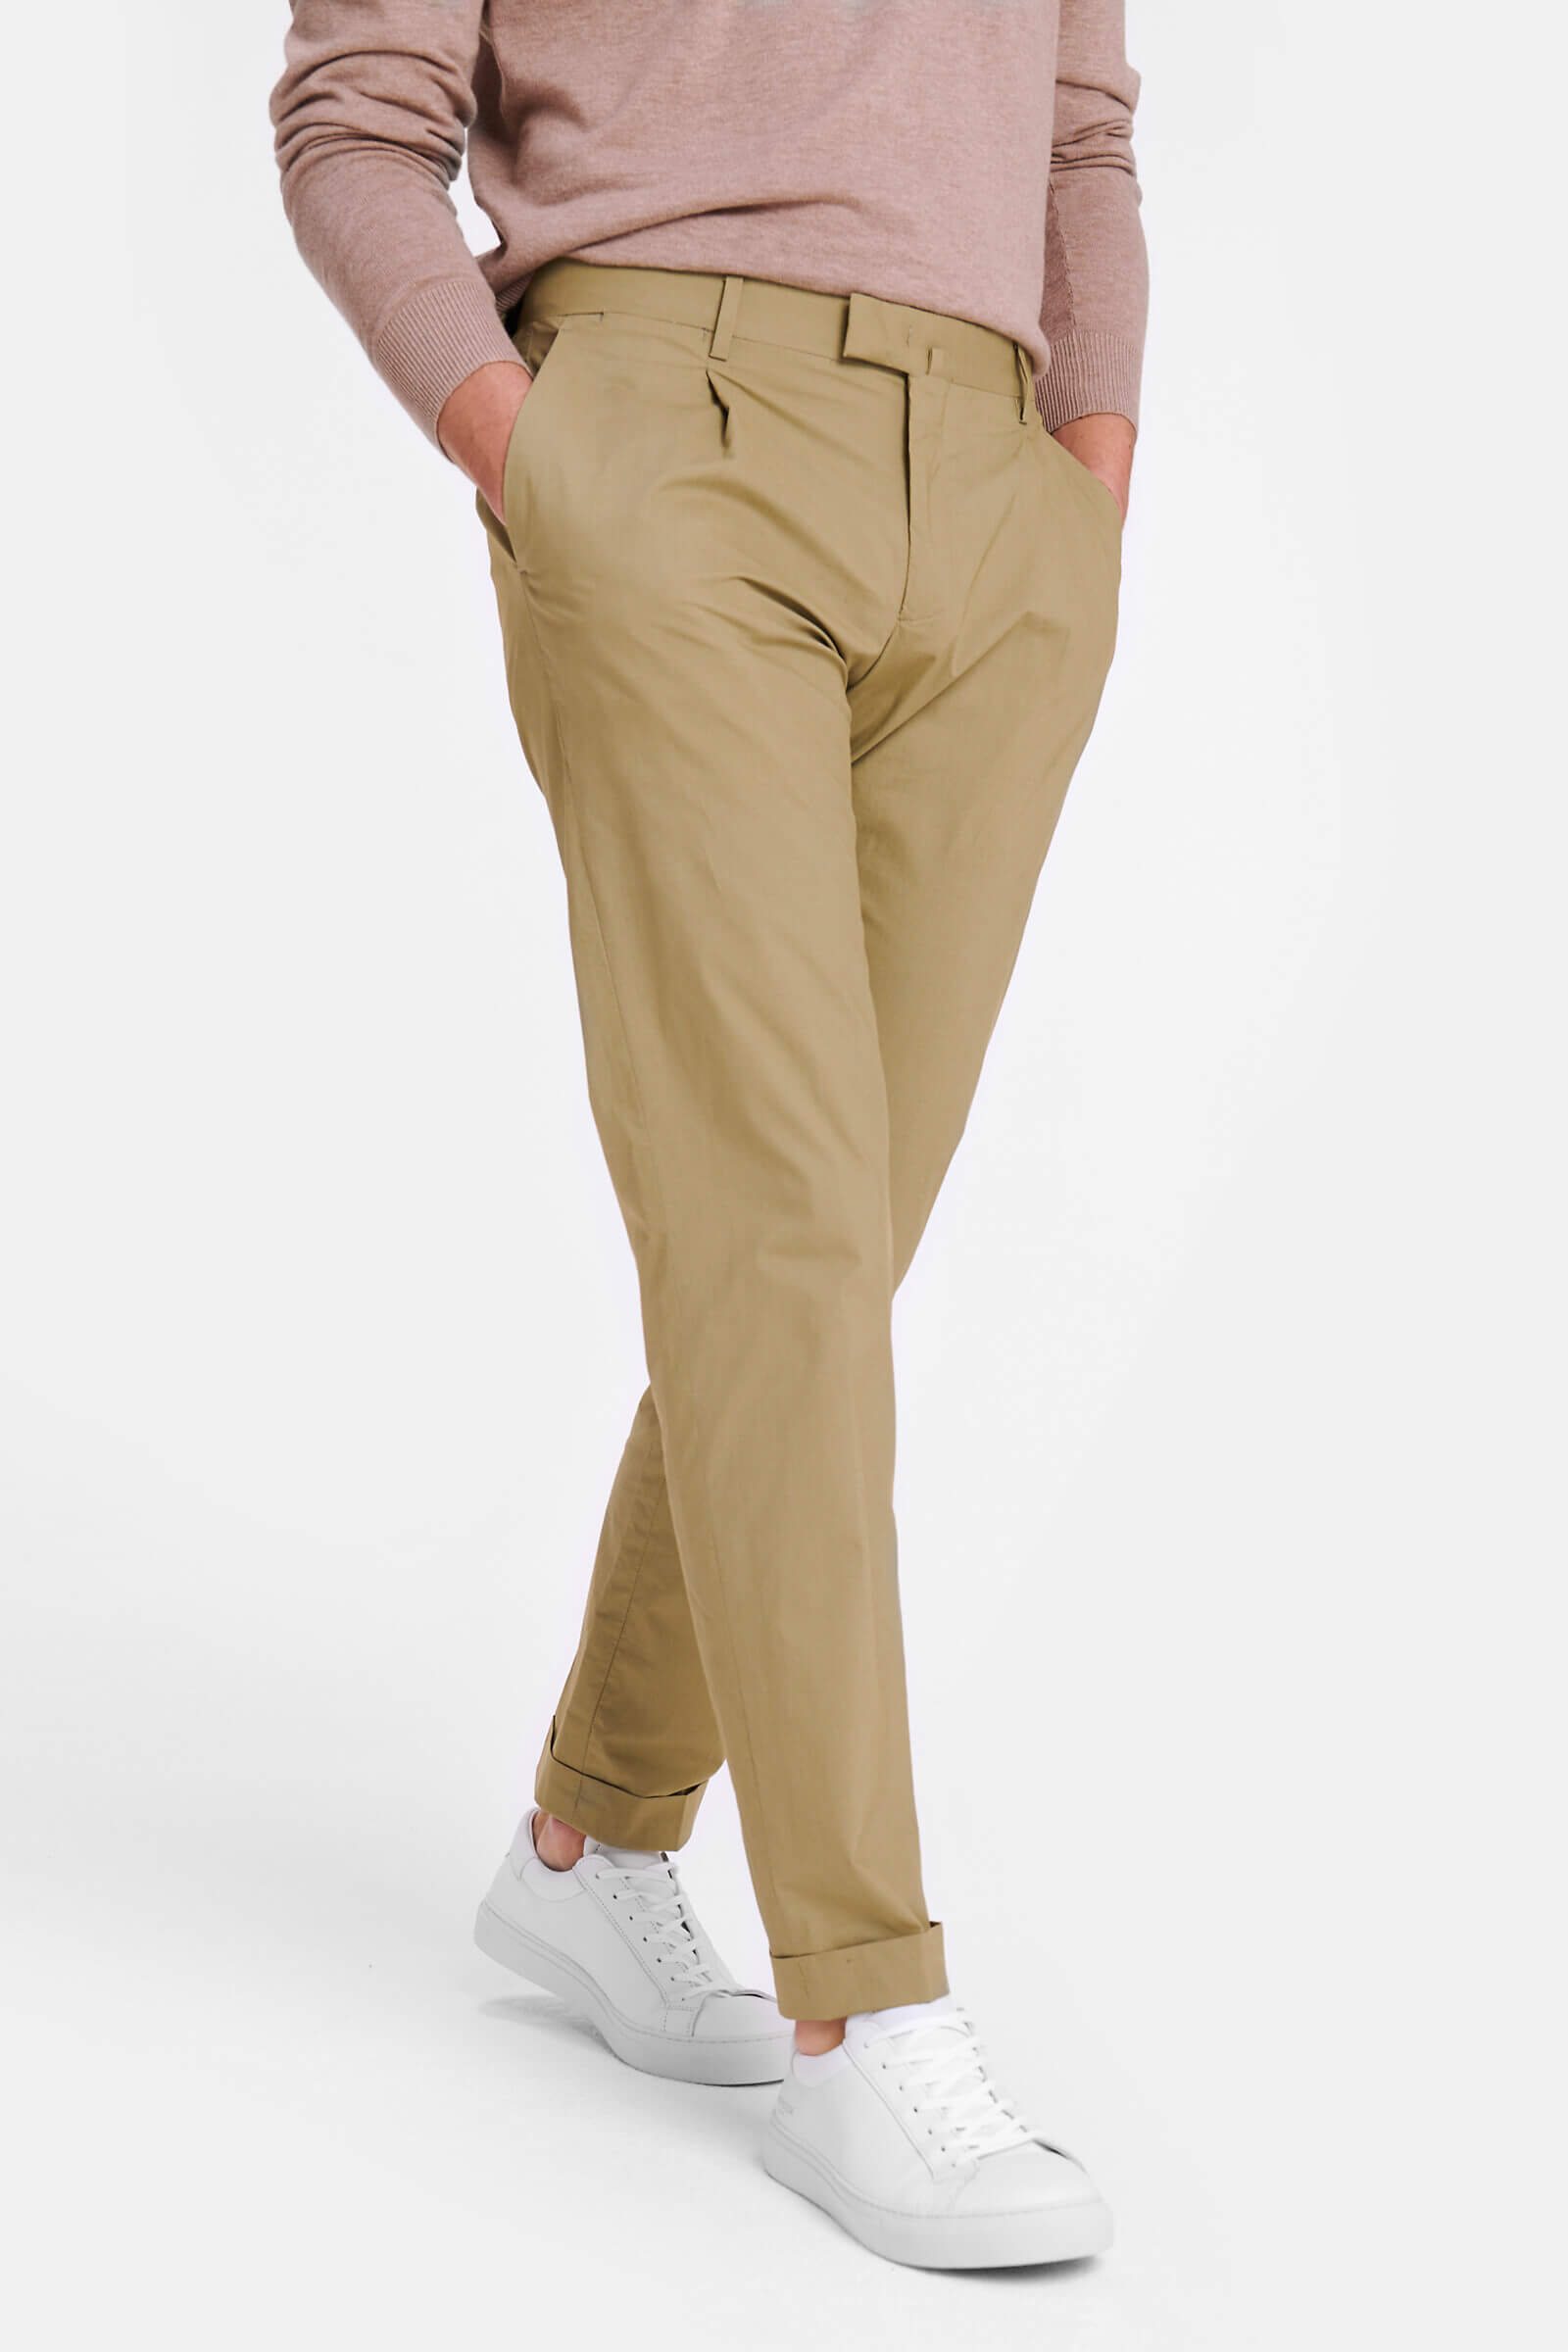 Regular fit poplin pleated chino